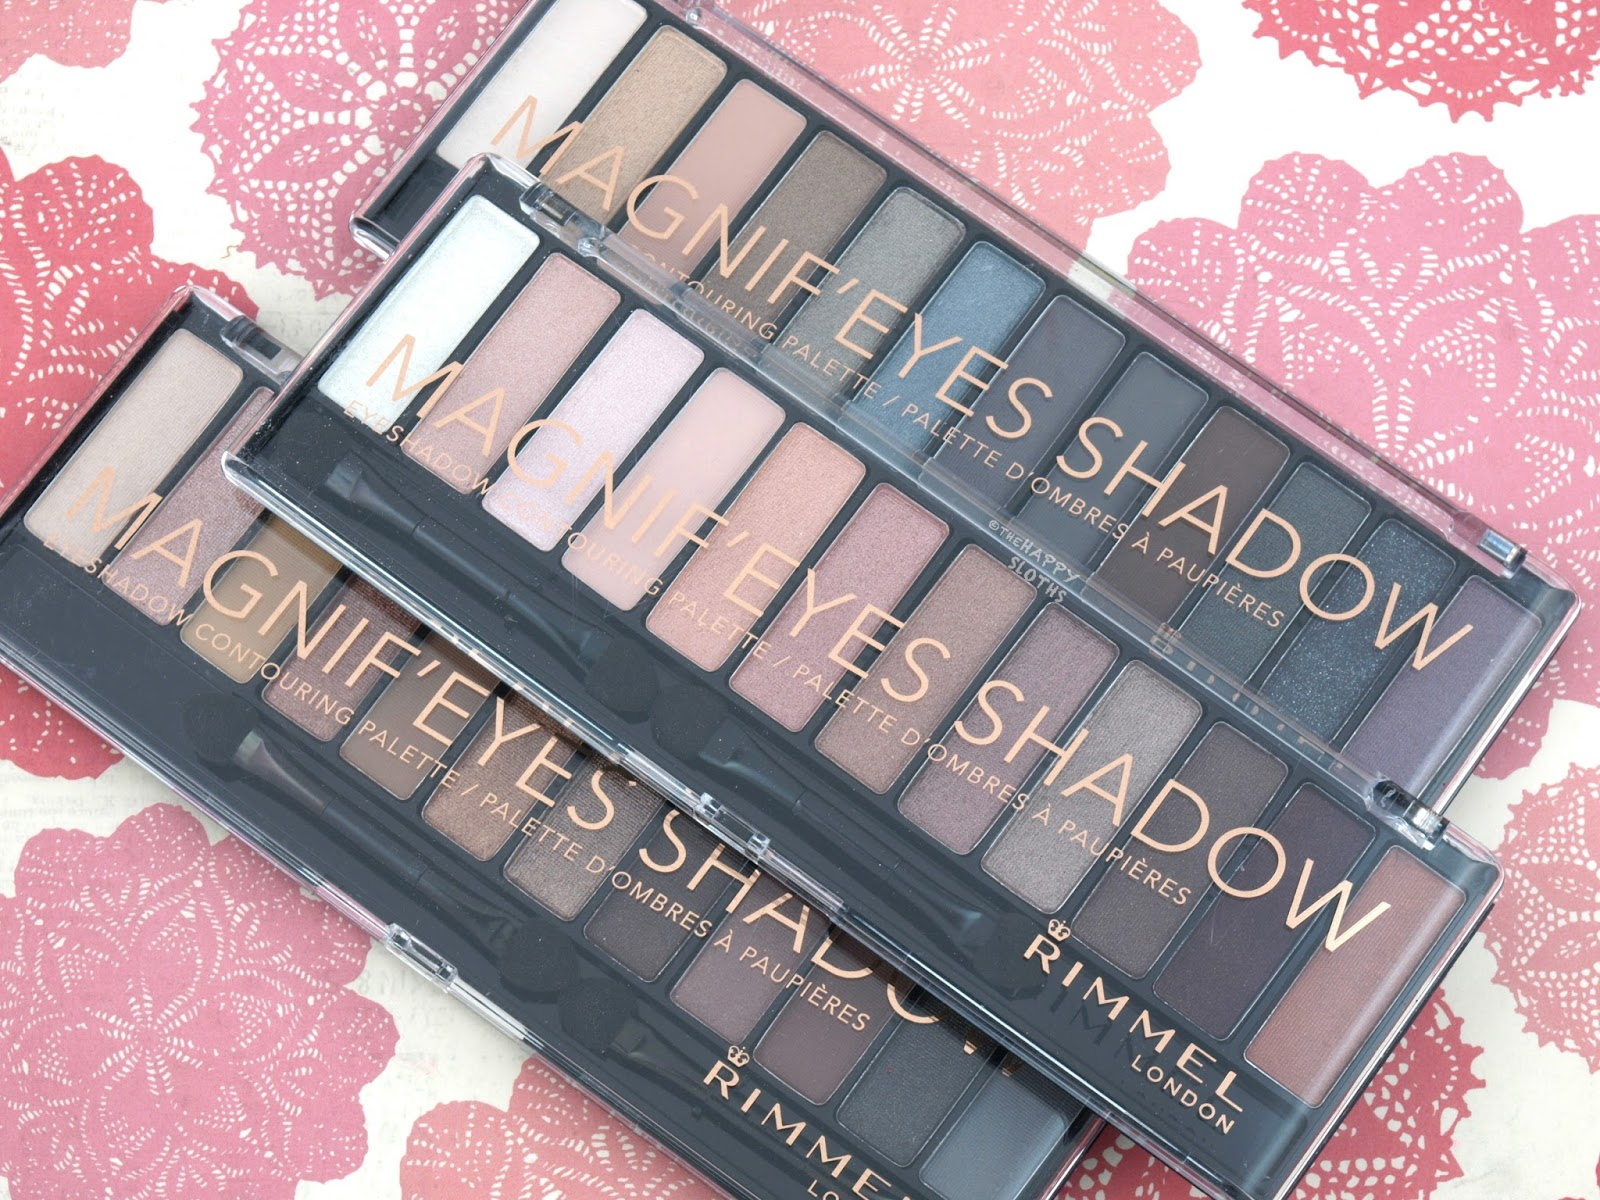 Rimmel London Magnif'eyes Eyeshadow Contouring Palette: Review and Swatches